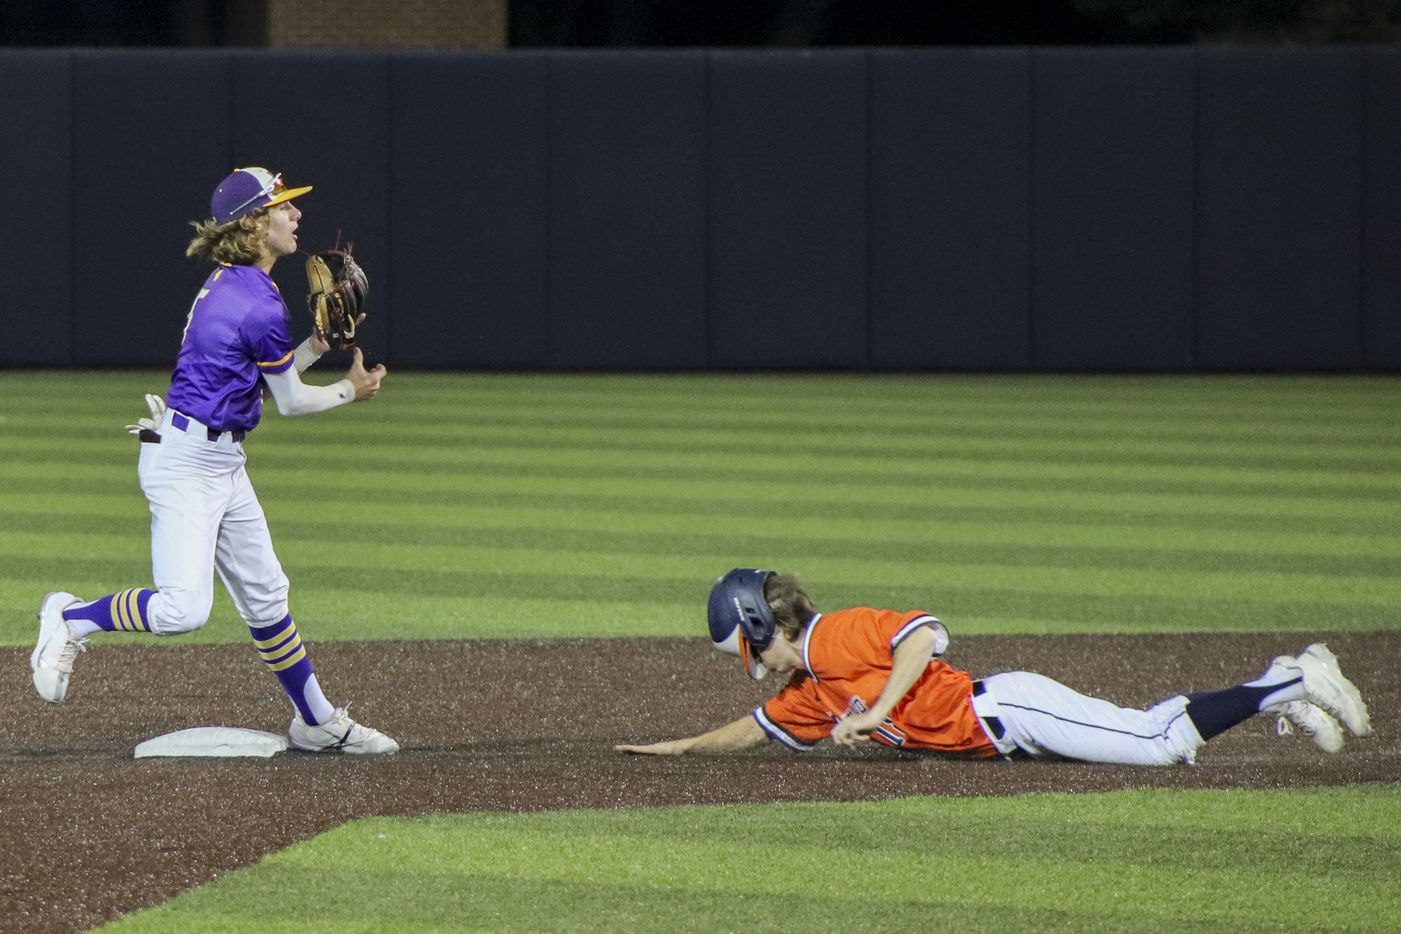 Hallsville second baseman Dunagan Sawyer (5) forces out Frisco Wakeland pinch runner Cooper Huff (18) during game two of the UIL baseball 5A Region II final series at Horner Ballpark in Dallas on Friday, June 4, 2021. (Elias Valverde II / Special Contributor)